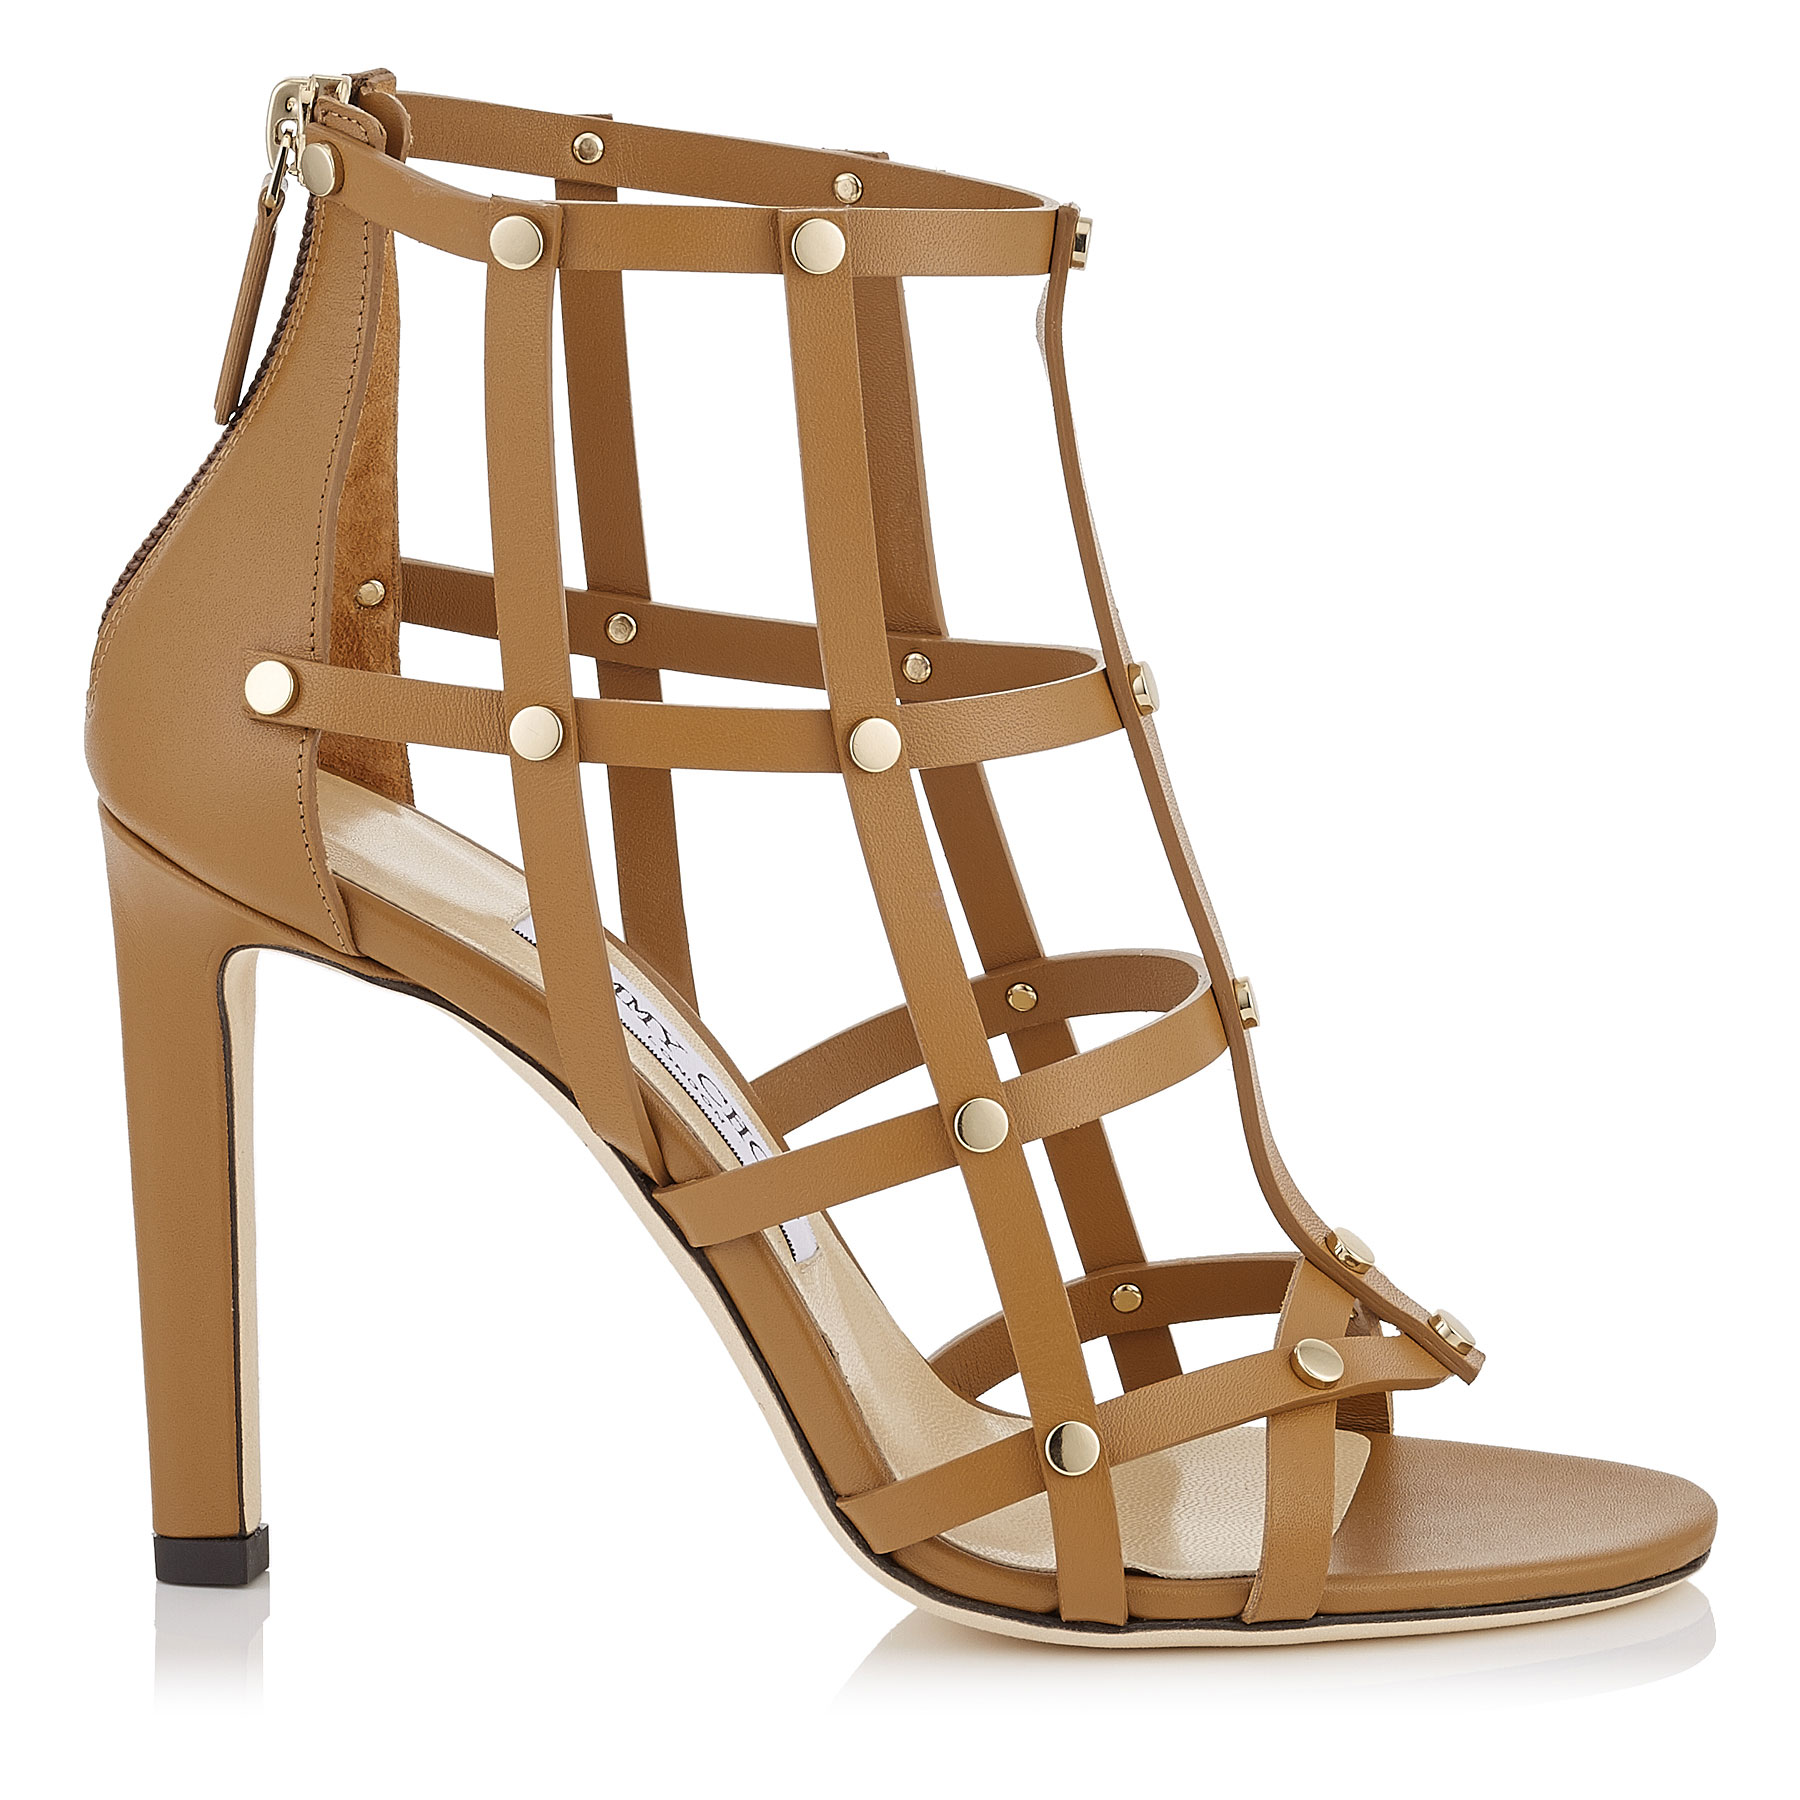 Photo of TINA 100 Cuoio Calf Leather Sandals with Light Gold Studs by Jimmy Choo womens shoes - buy Jimmy Choo footwear online